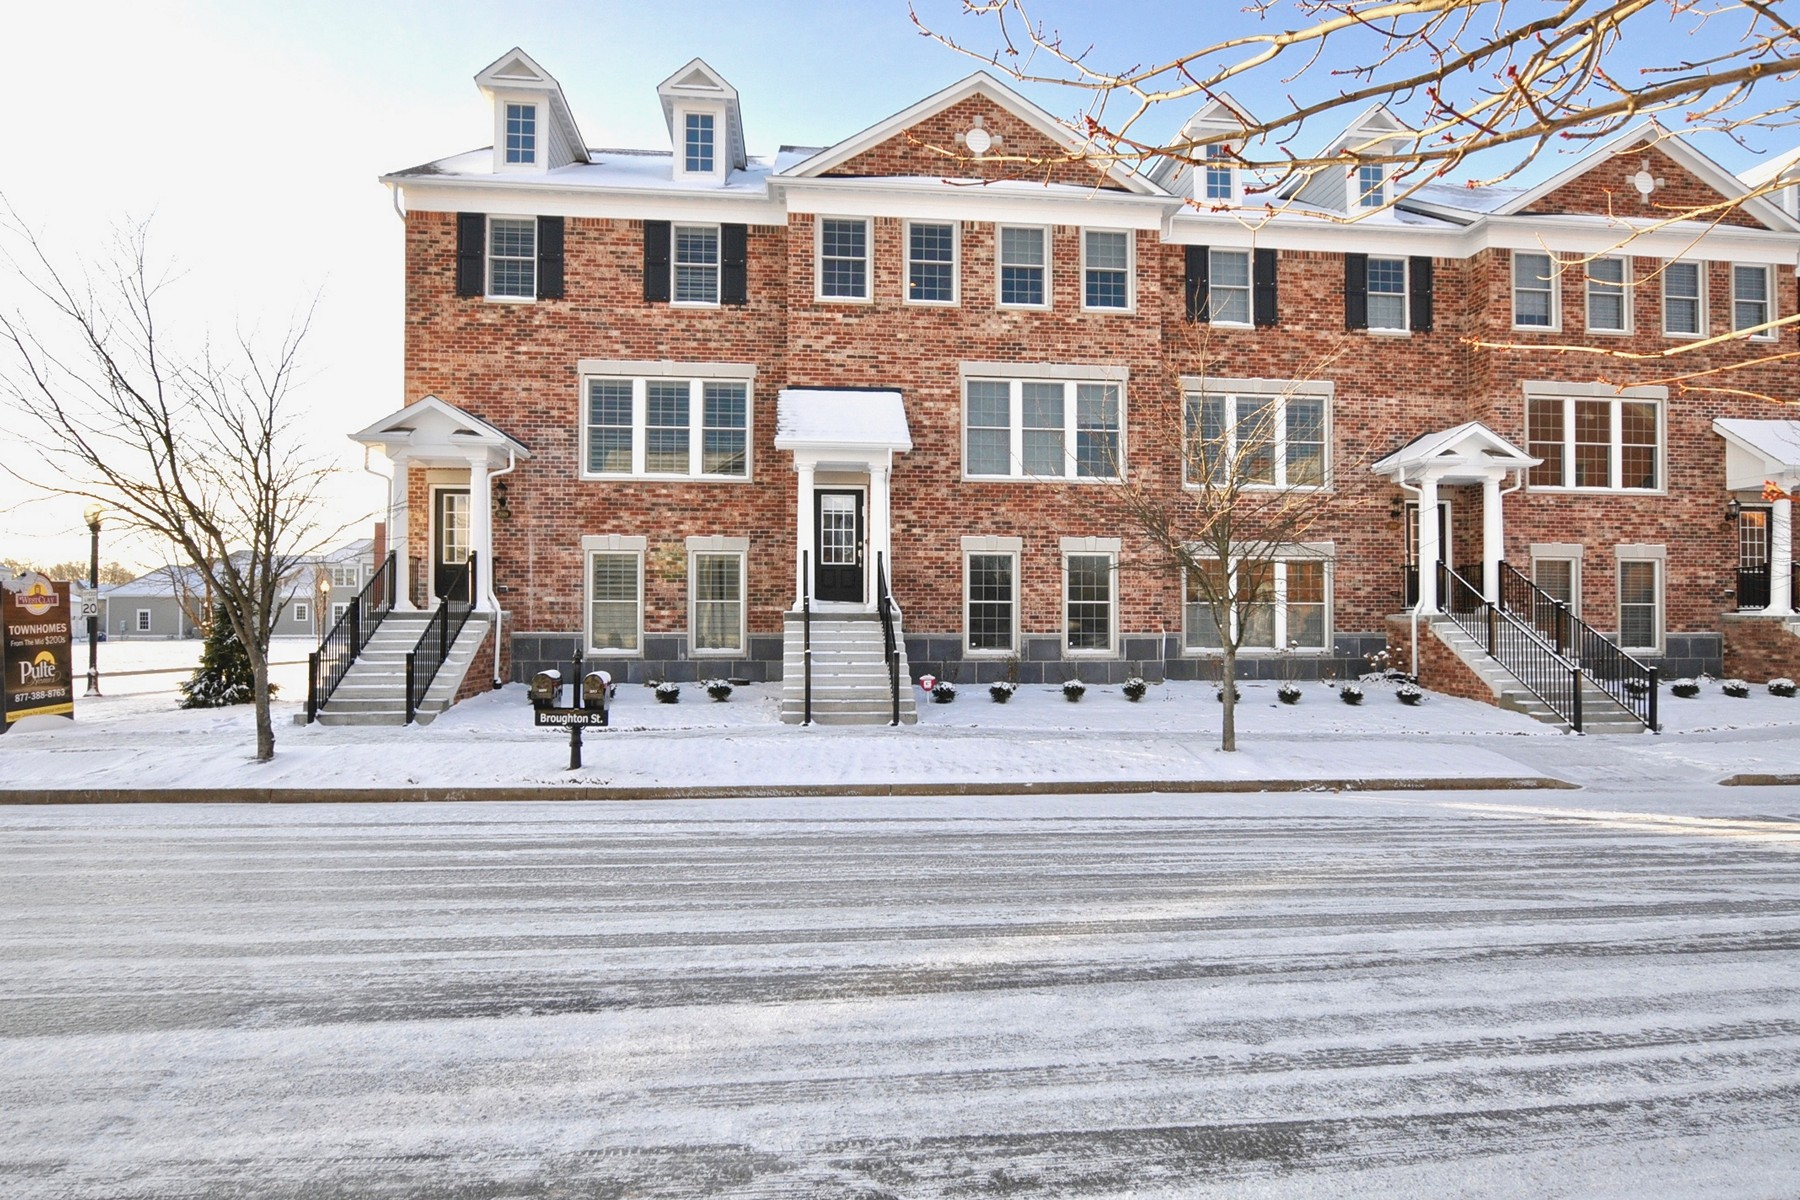 Casa unifamiliar adosada (Townhouse) por un Alquiler en Like New Luxury Townhome 2013 Broughton Street Carmel, Indiana 46032 Estados Unidos